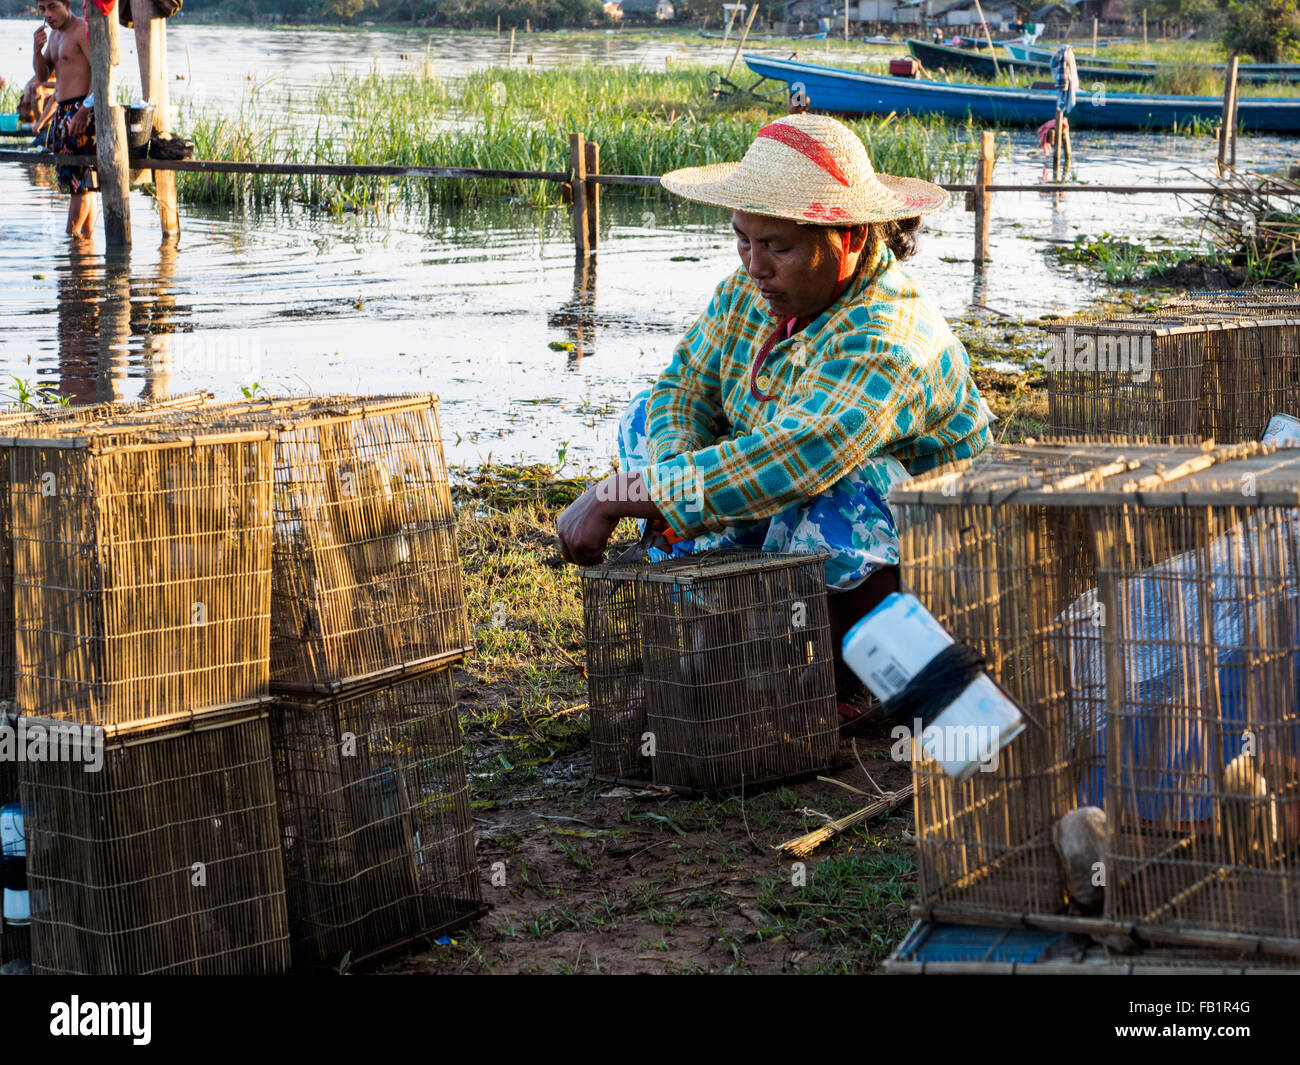 A local woman preparing fishing tool on the lake side. Stock Photo